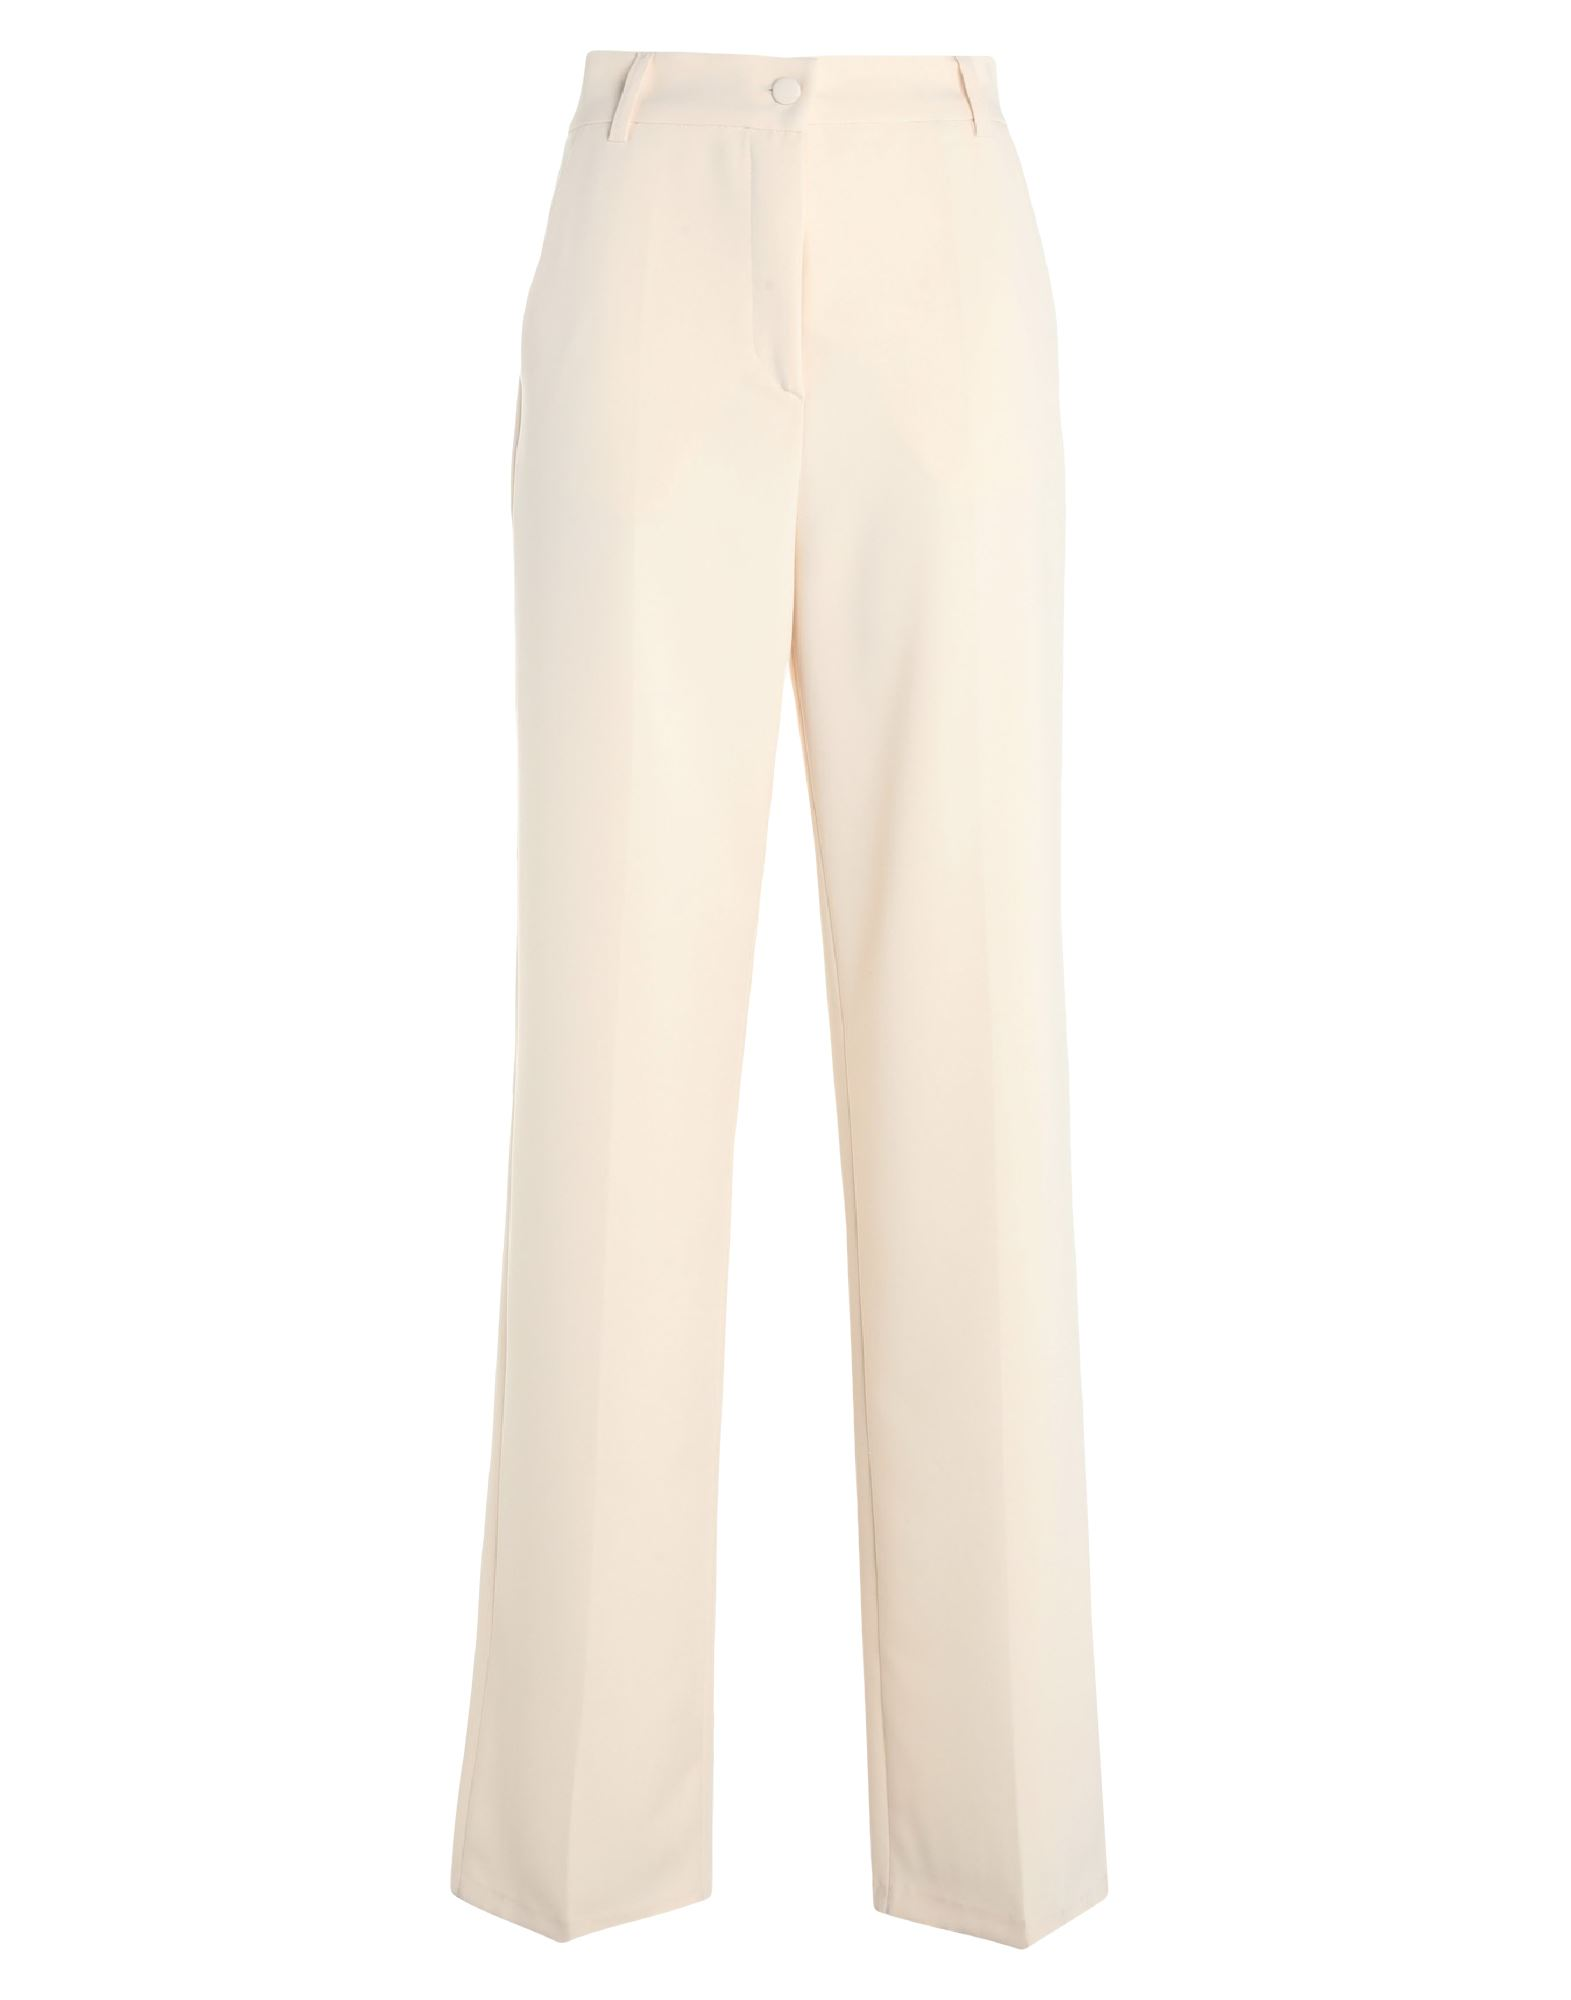 Revise Casual Pants In Neutrals